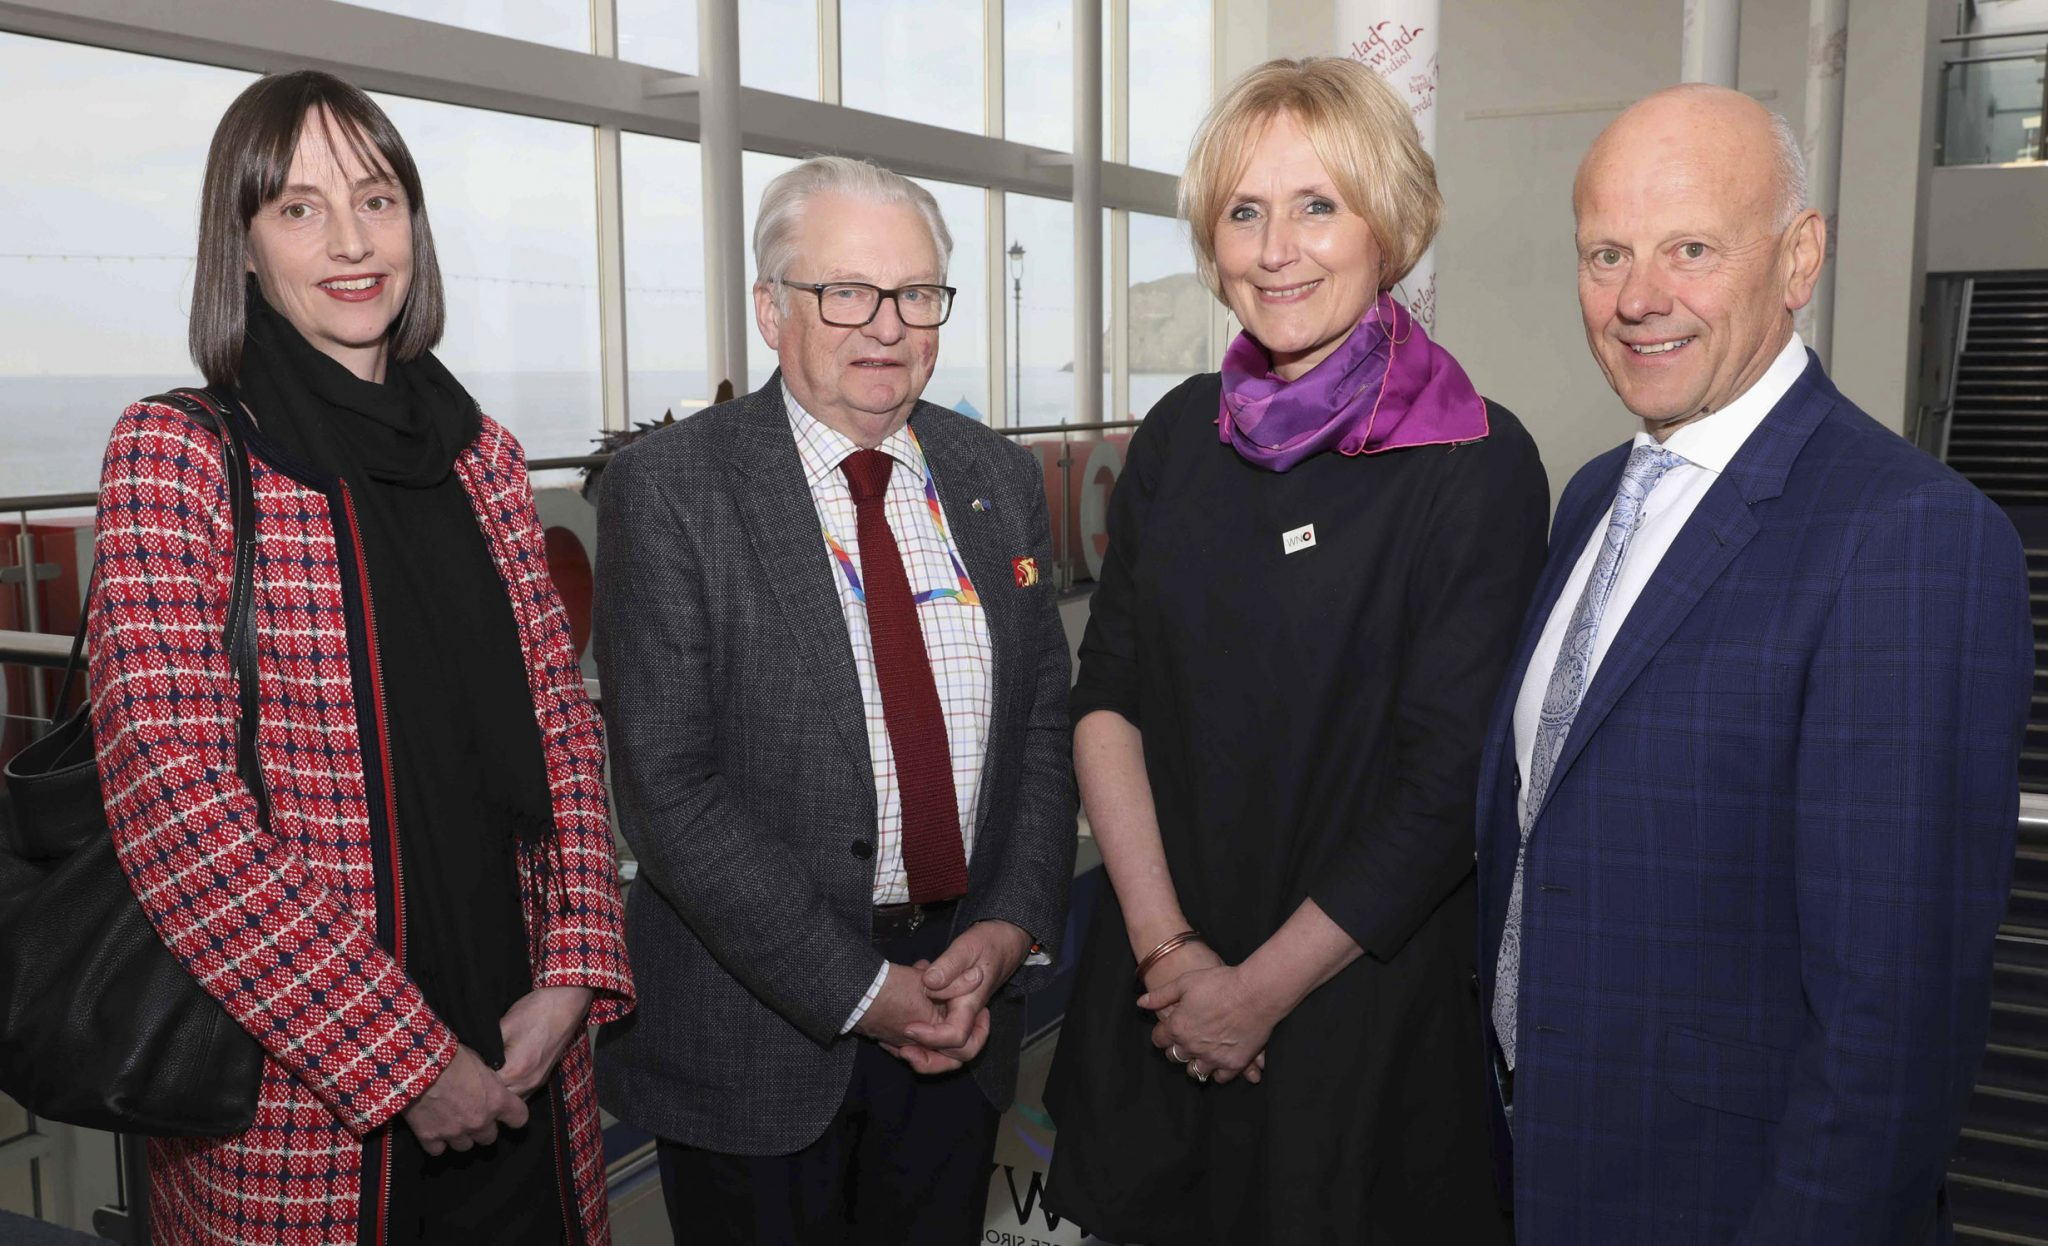 Arts-loving care boss makes operatic overtures to business leaders